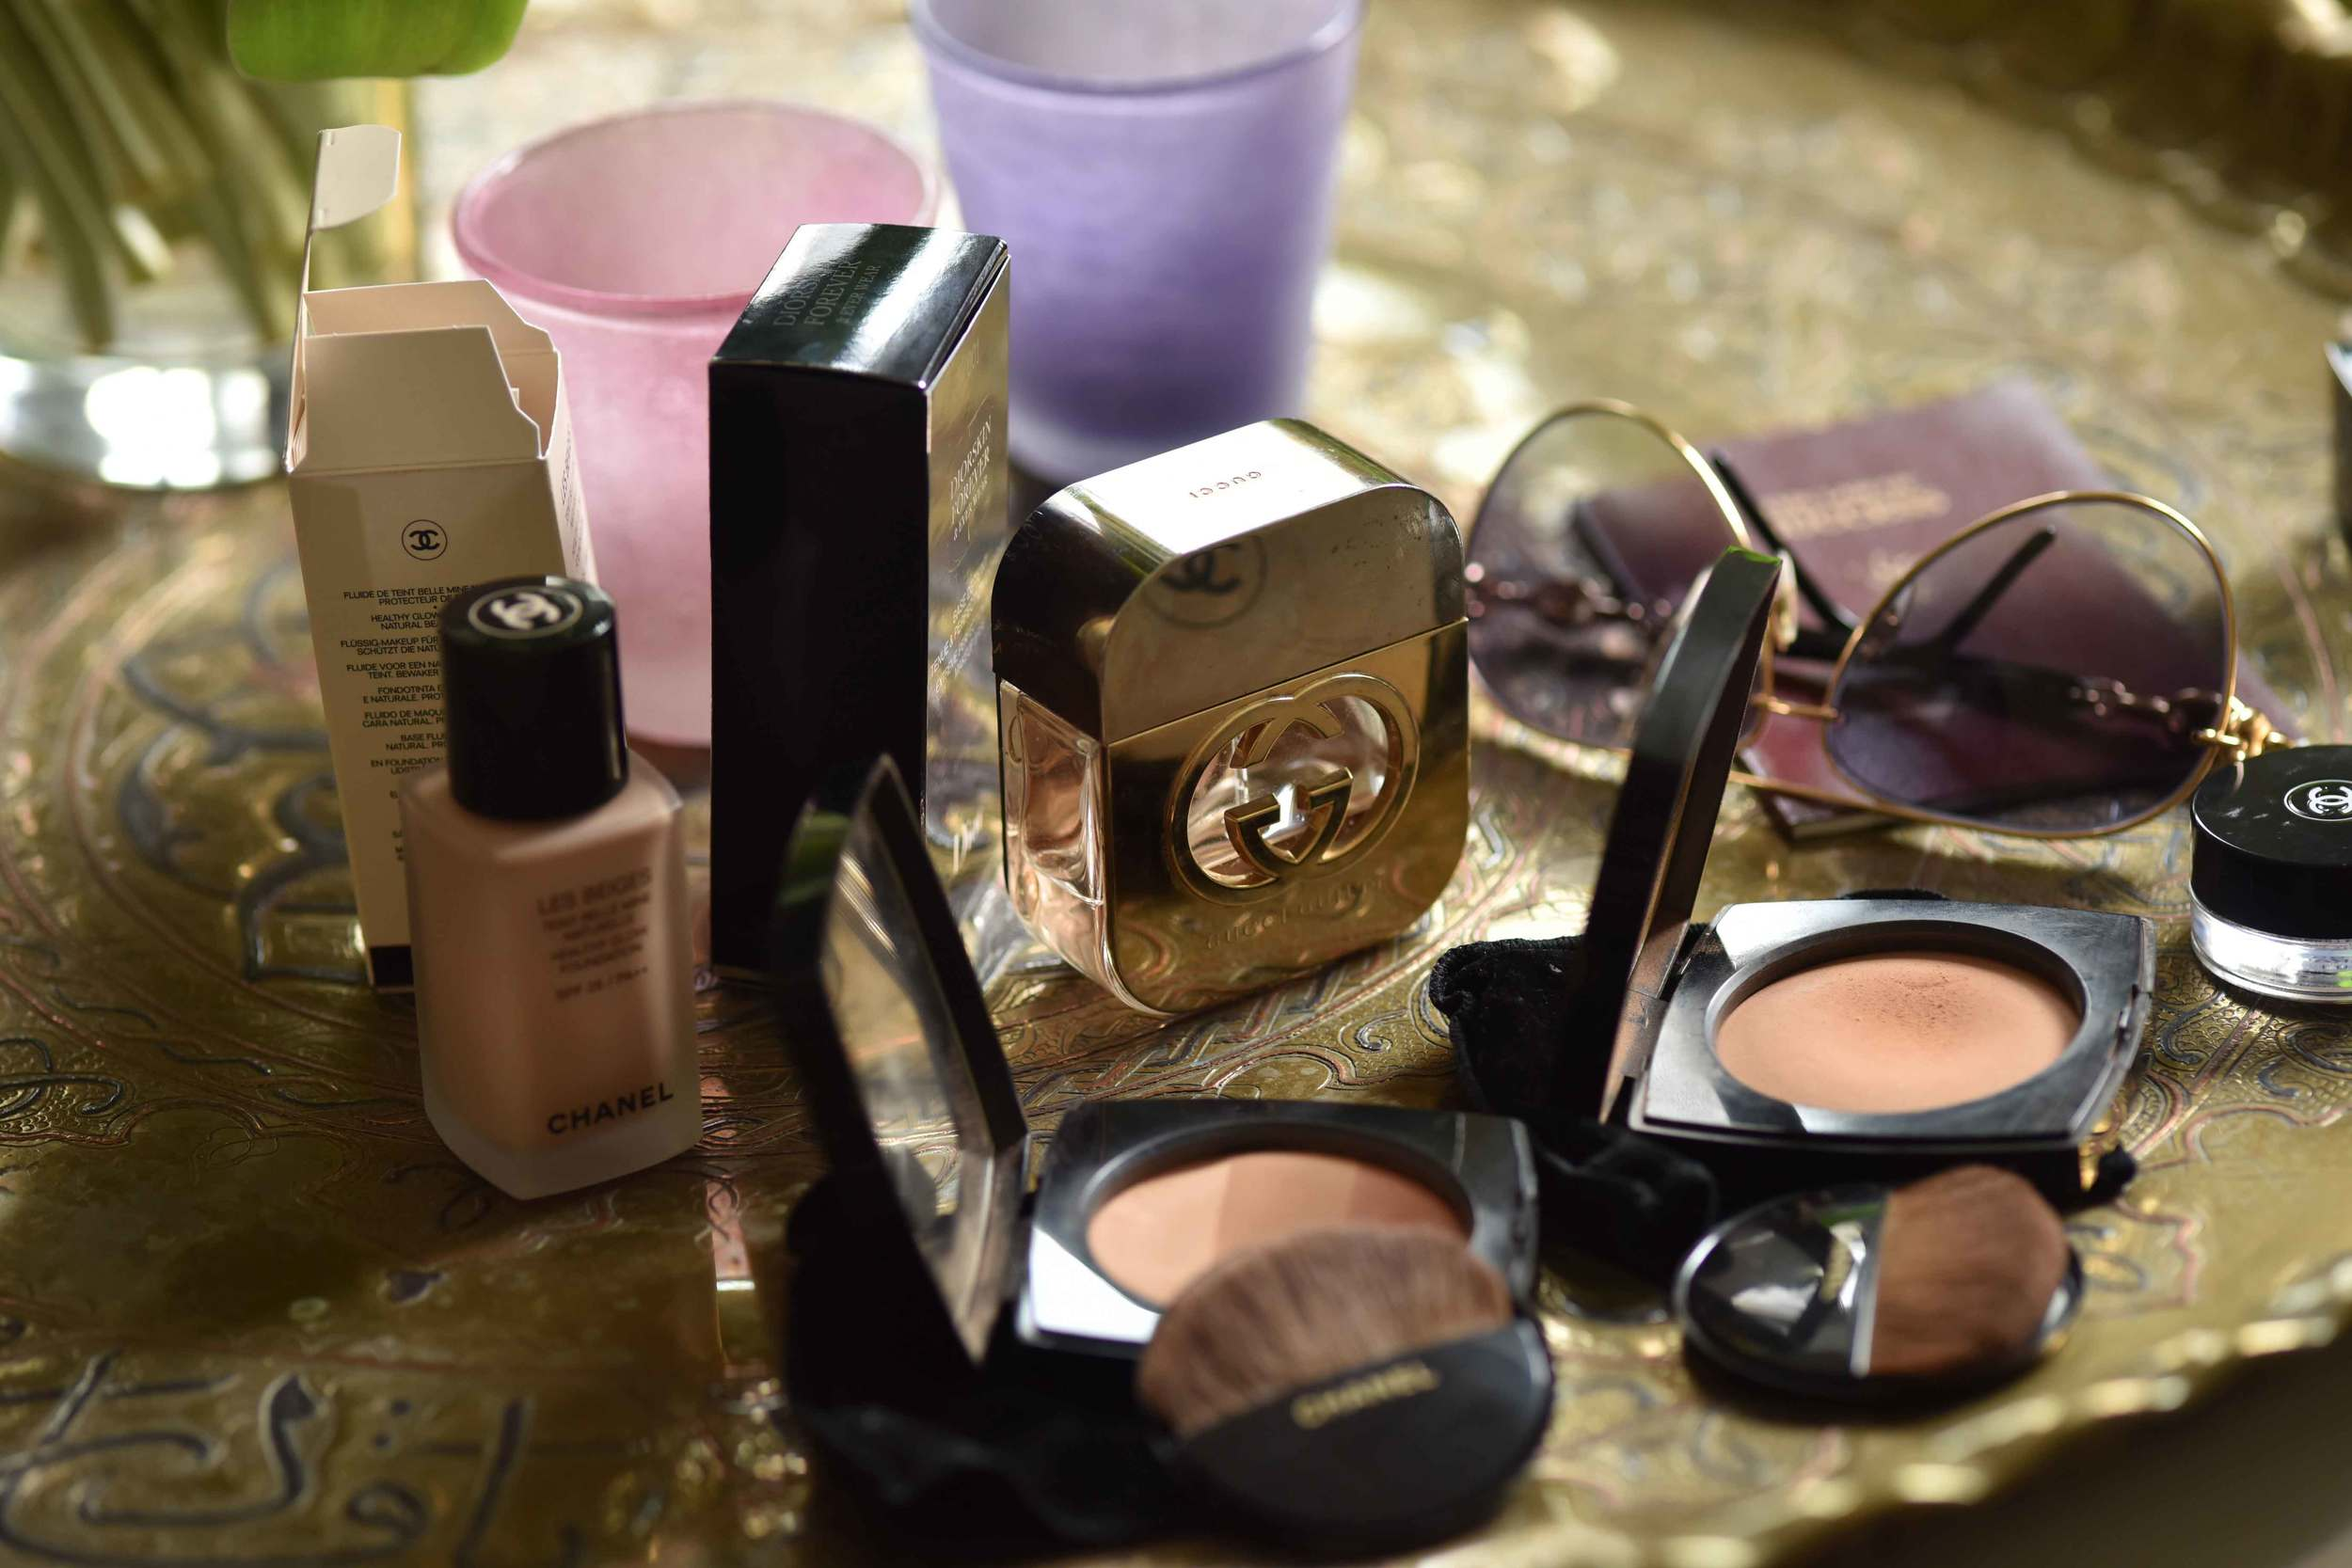 Make up from Chanel, Dior, Gucci perfume, Gucci sunglasses. Image©sourcingstyle.com, Photo: Nicola Nolting.